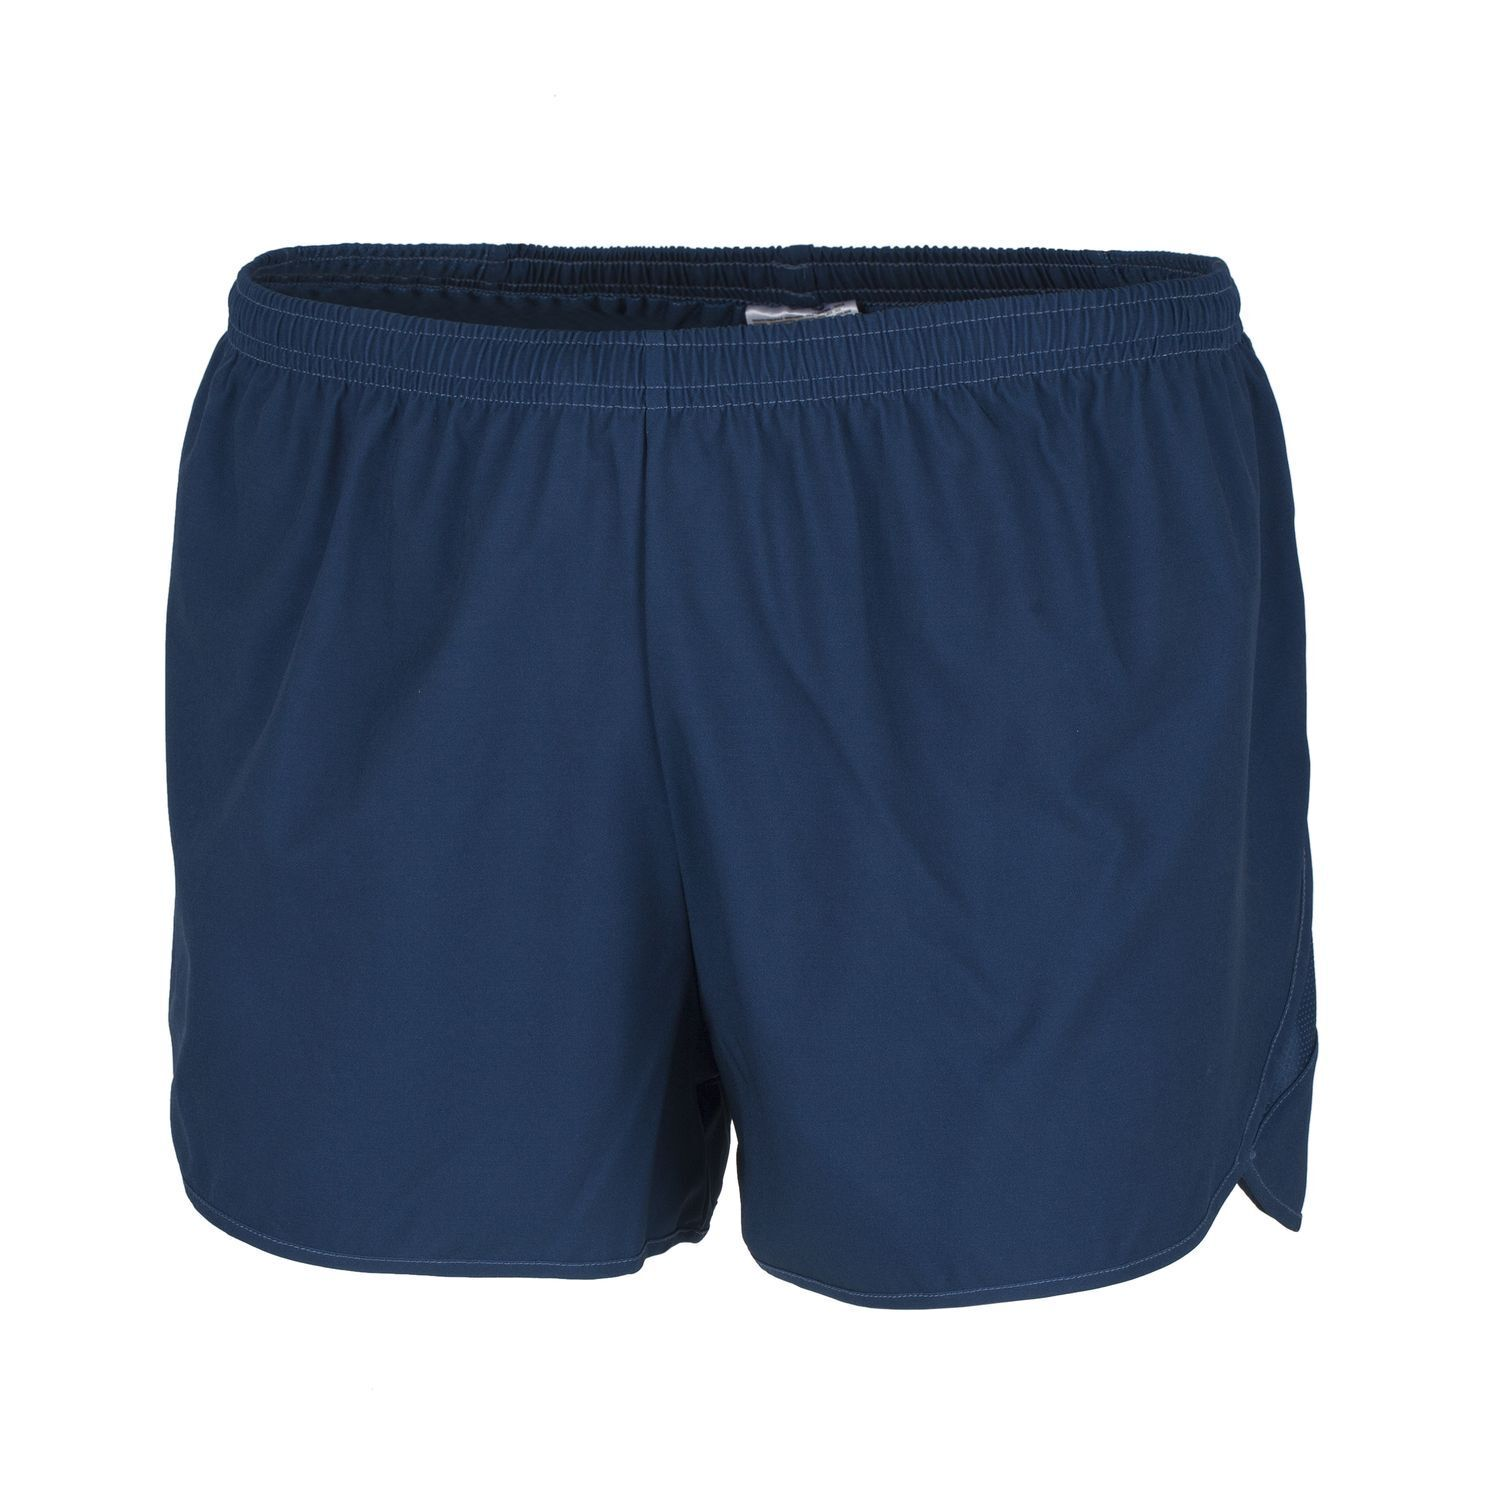 CMP Running Shorts functional  pants shorts bluee Breathable Mesh Insert  online shopping sports